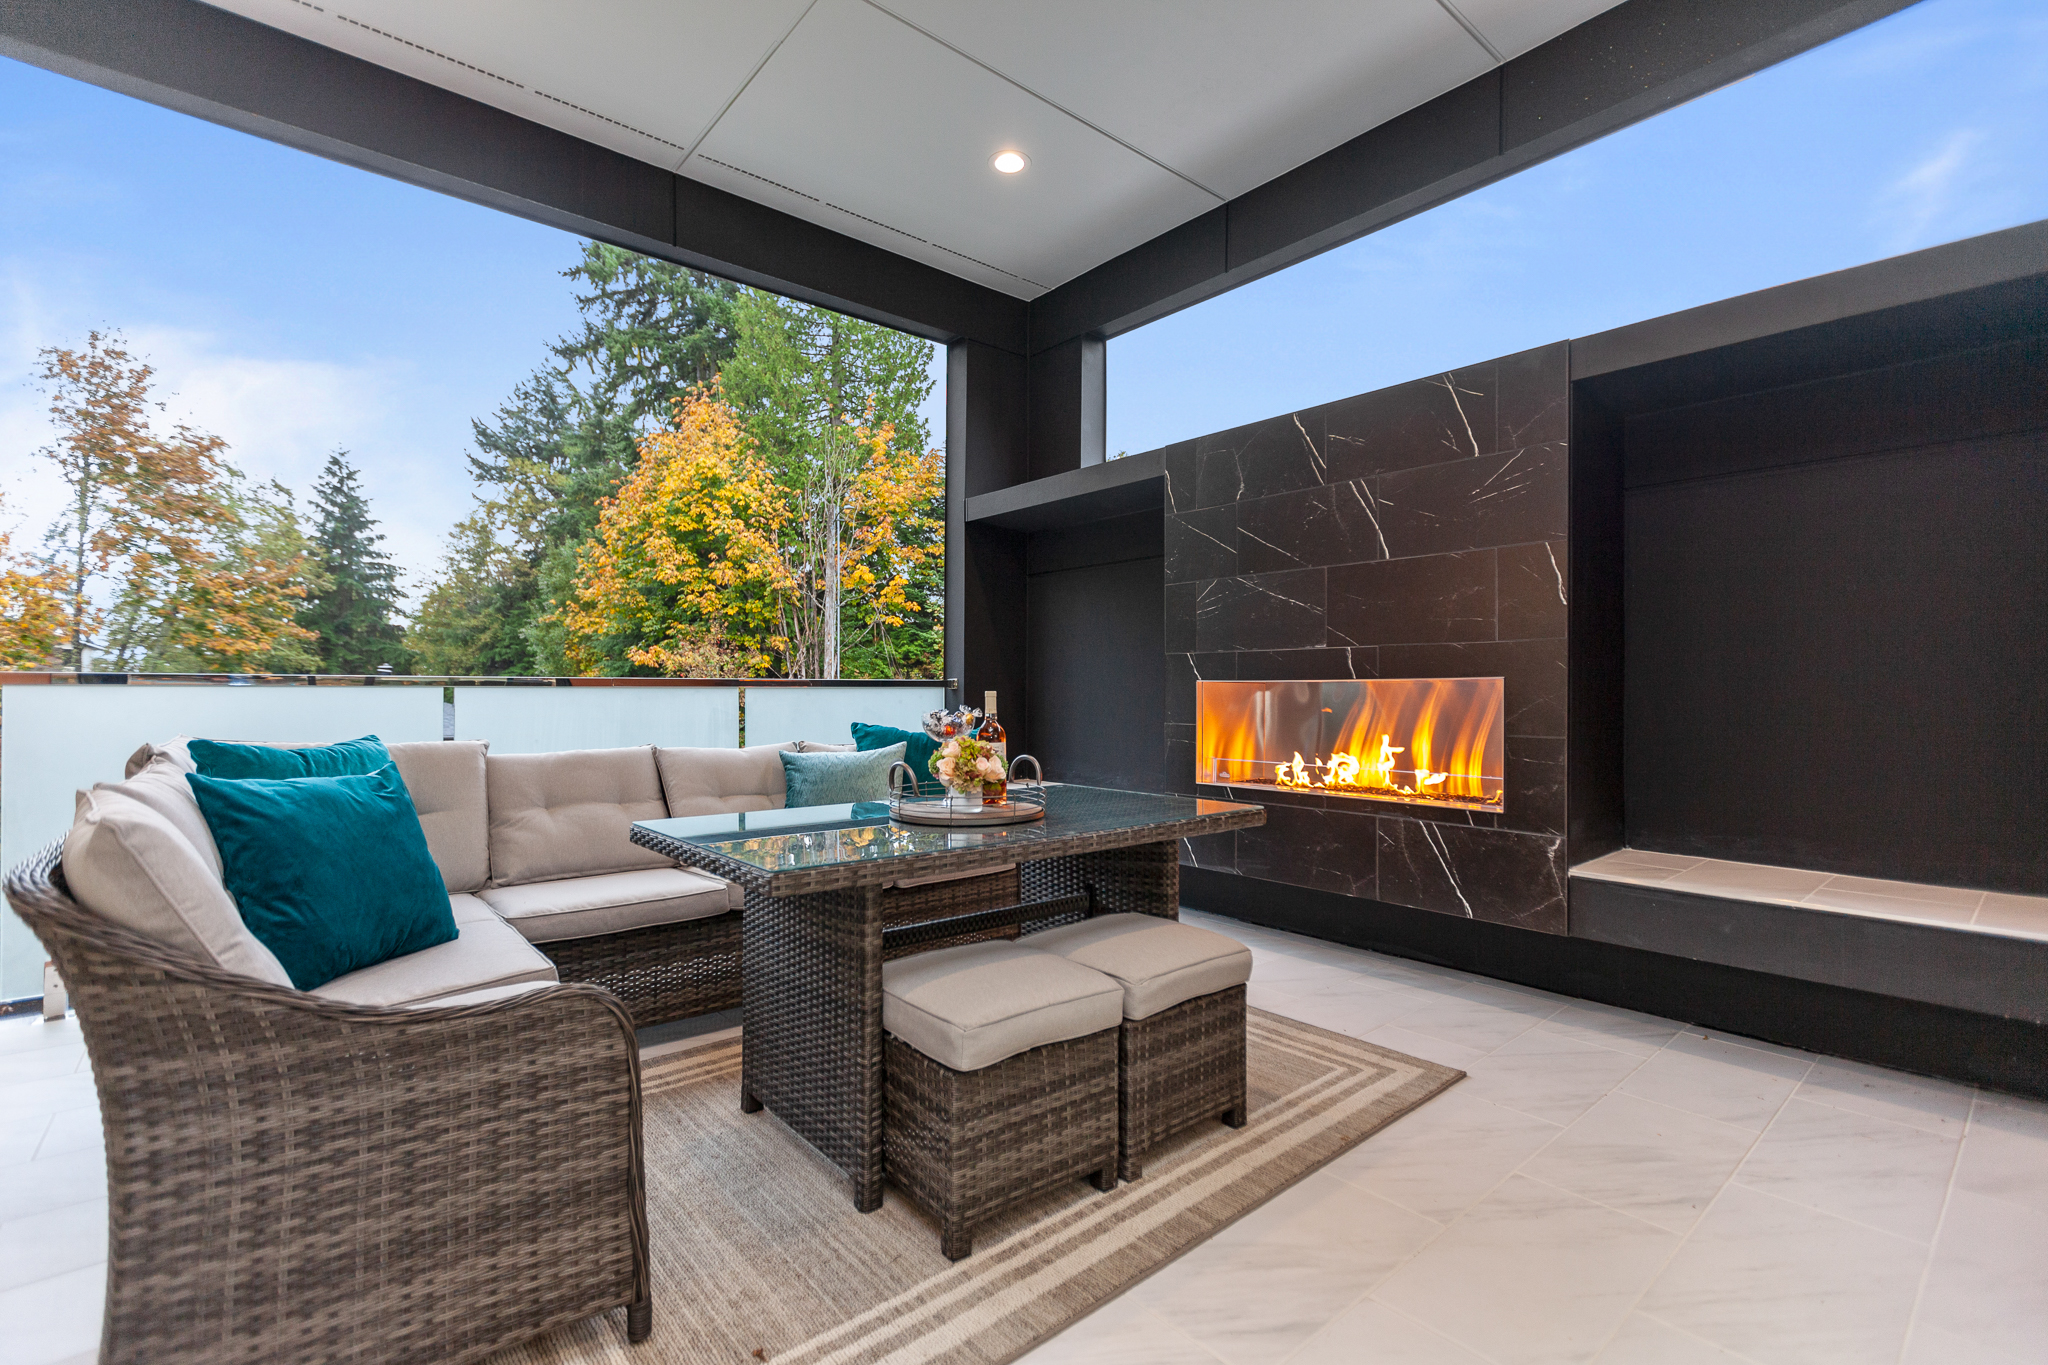 Outdoor Living - Luxury Real Estate - 18109 84th Ave W, Edmonds